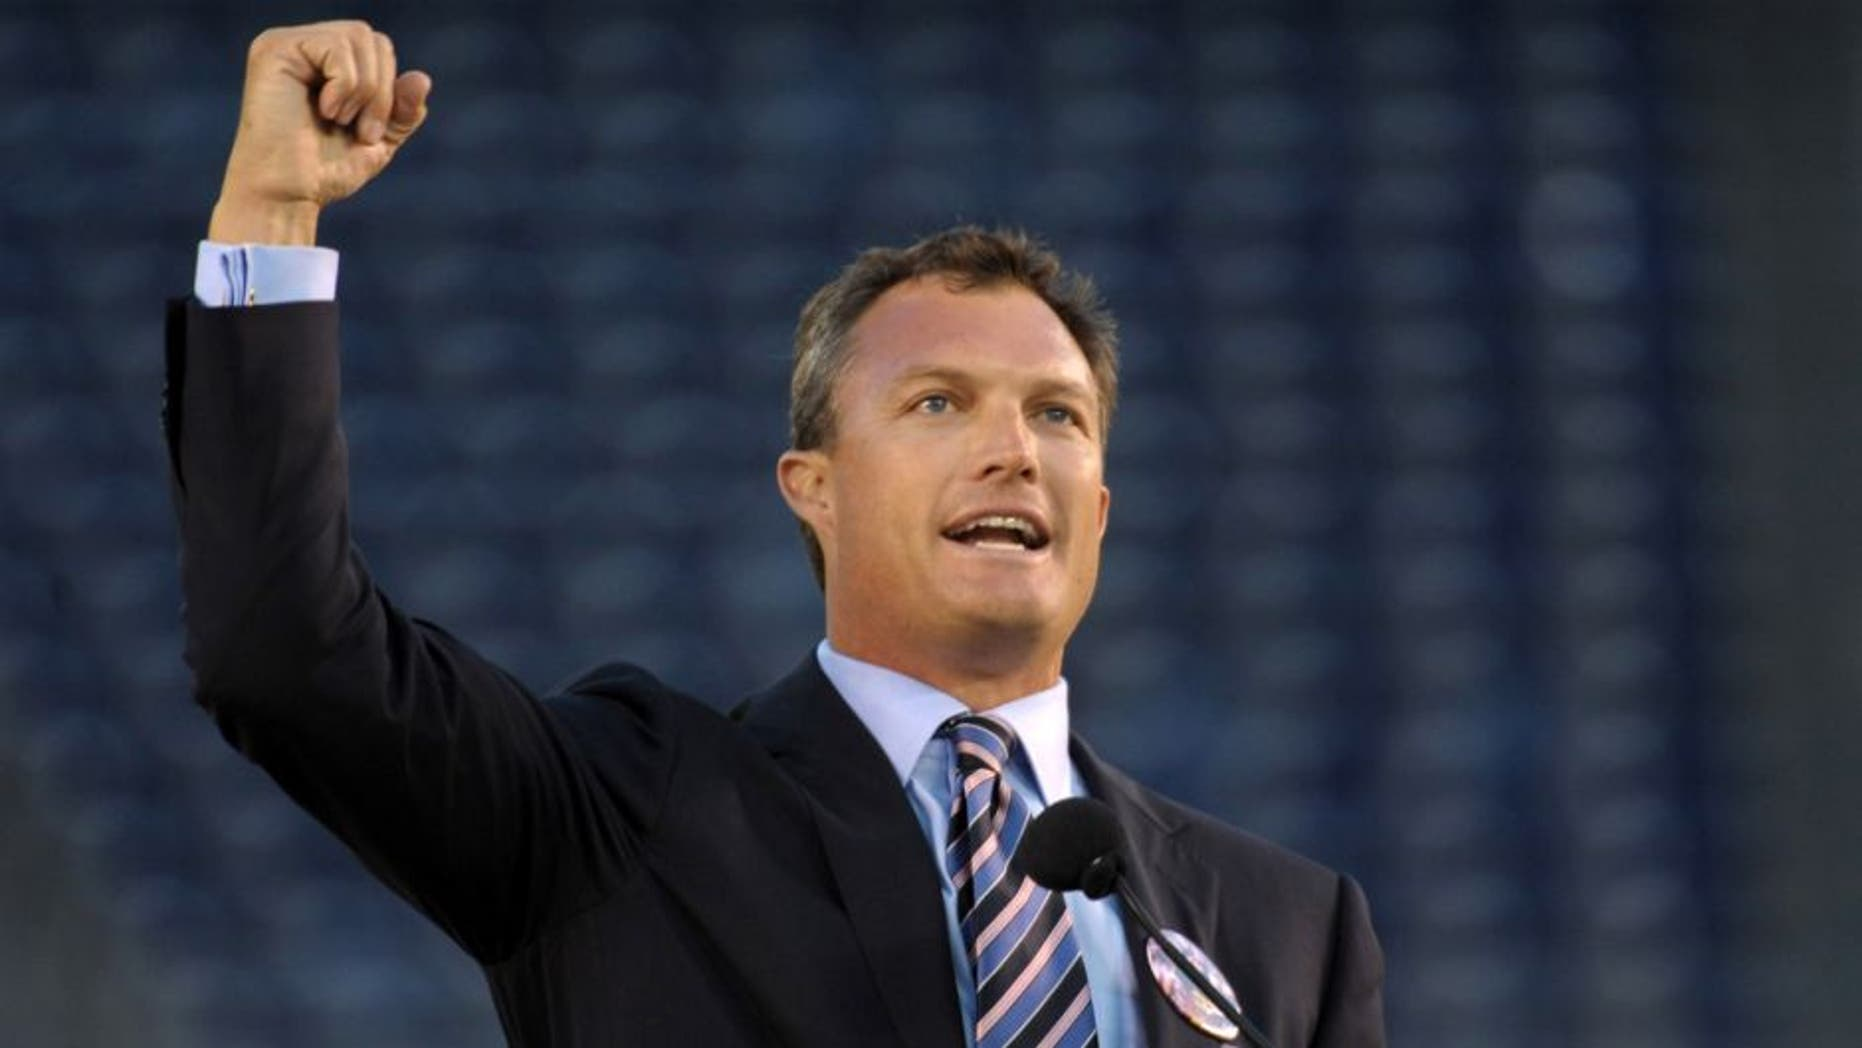 May 10, 2012; San Diego, CA, USA; Tampa Bay Buccaneers and Denver Broncos former safety John Lynch speaks at the Celebration of Life for Junior Seau at Qualcomm Stadium. Mandatory Credit: Kirby Lee/Image of Sport-USA TODAY Sports